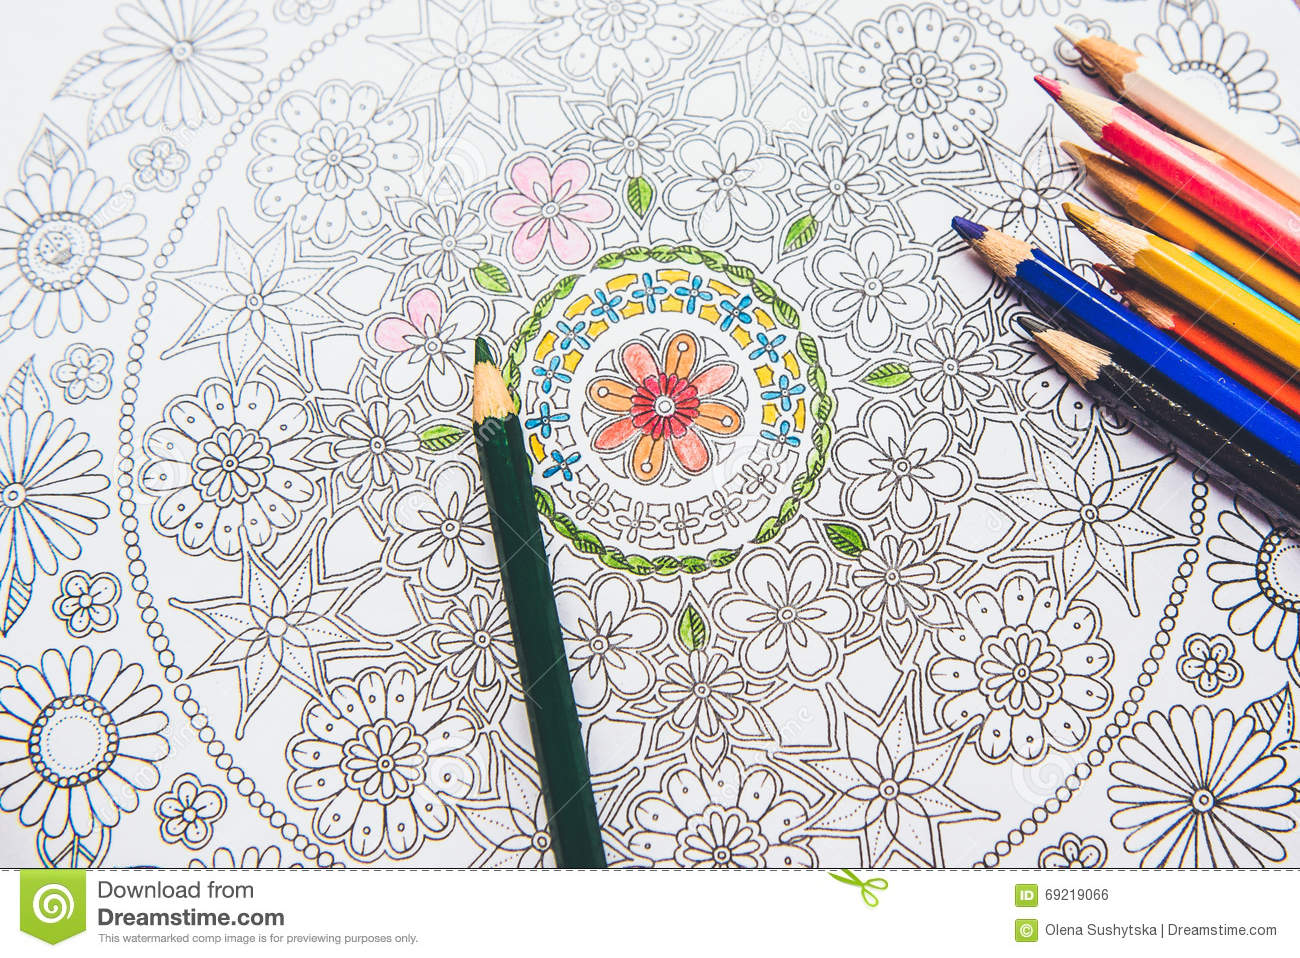 The stress coloring book - Anti Stress Coloring Book In The Drawing Process